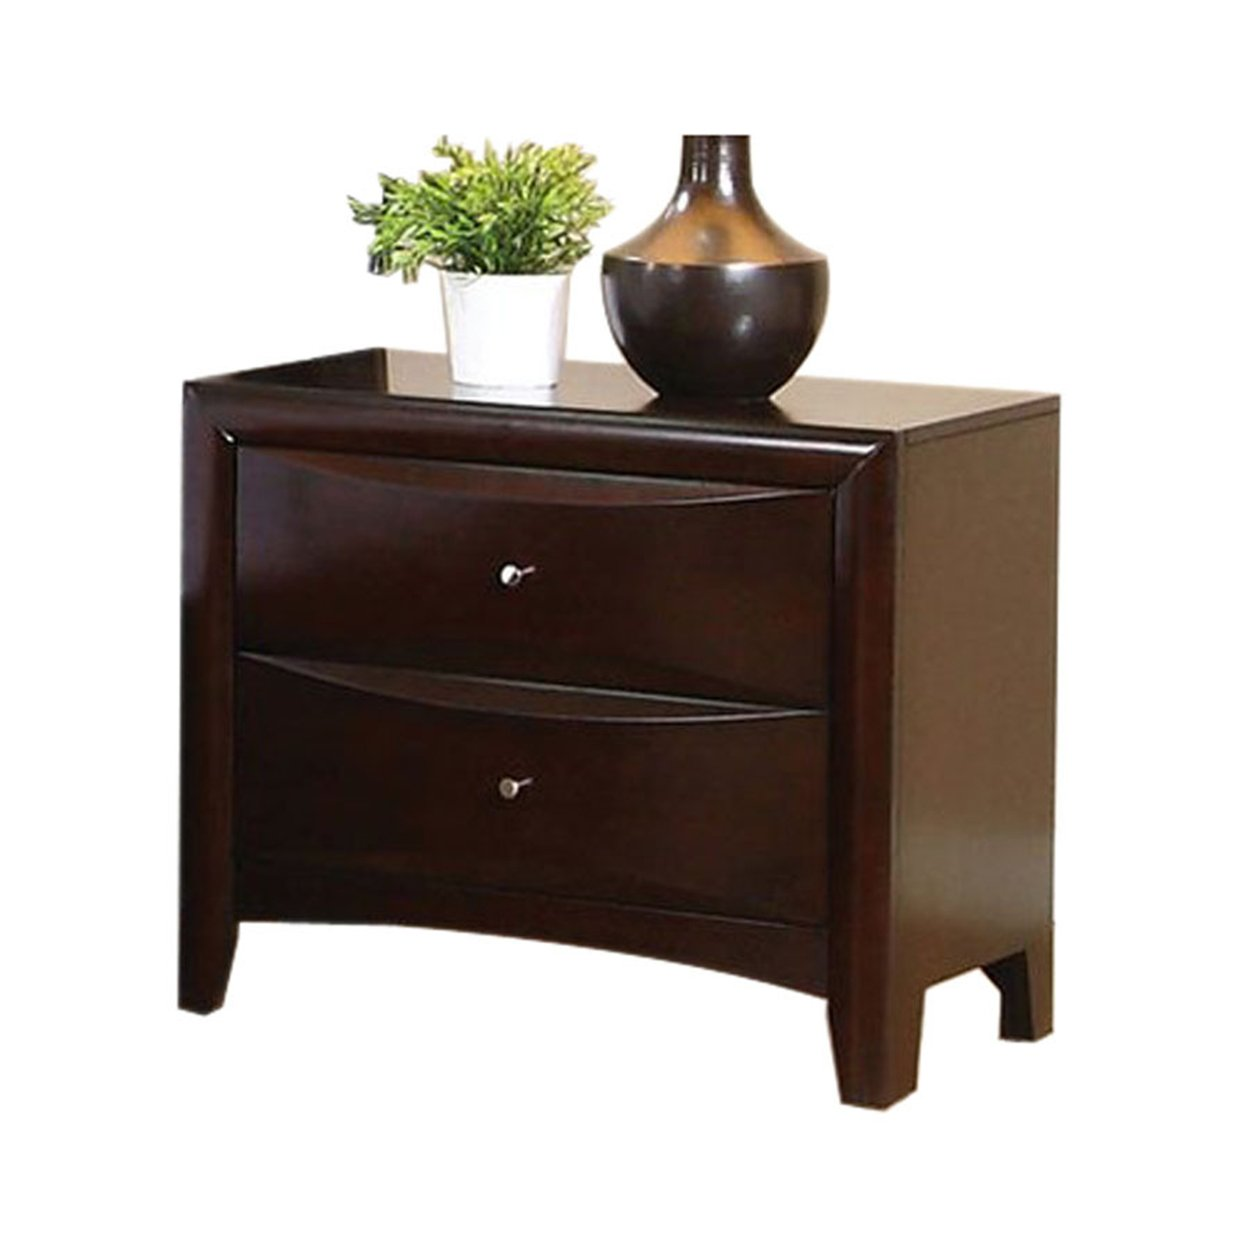 Phoenix 2-drawer Nightstand Cappuccino by Coaster Home Furnishings